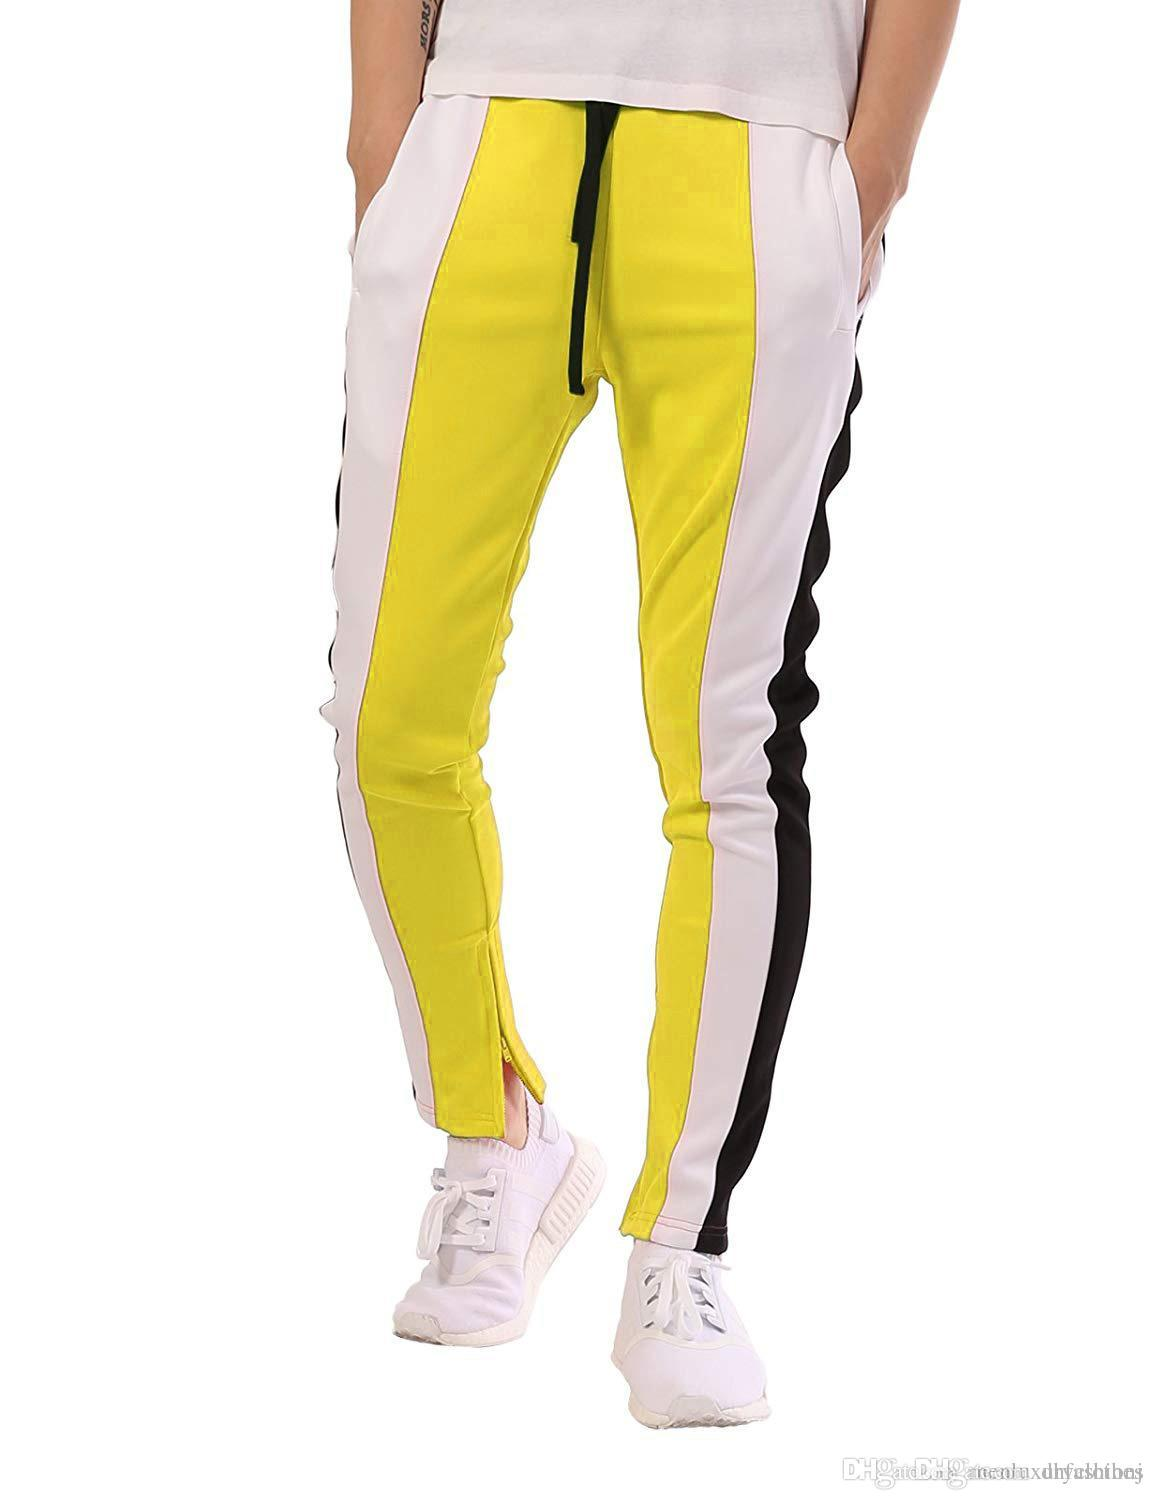 41809e61d249ca Patchwork Designer Jogger Pants For Mens Fashion Clothing Trousers Sports  Casual Teenager Pantalones From Dhfashionj, $38.14 | DHgate.Com